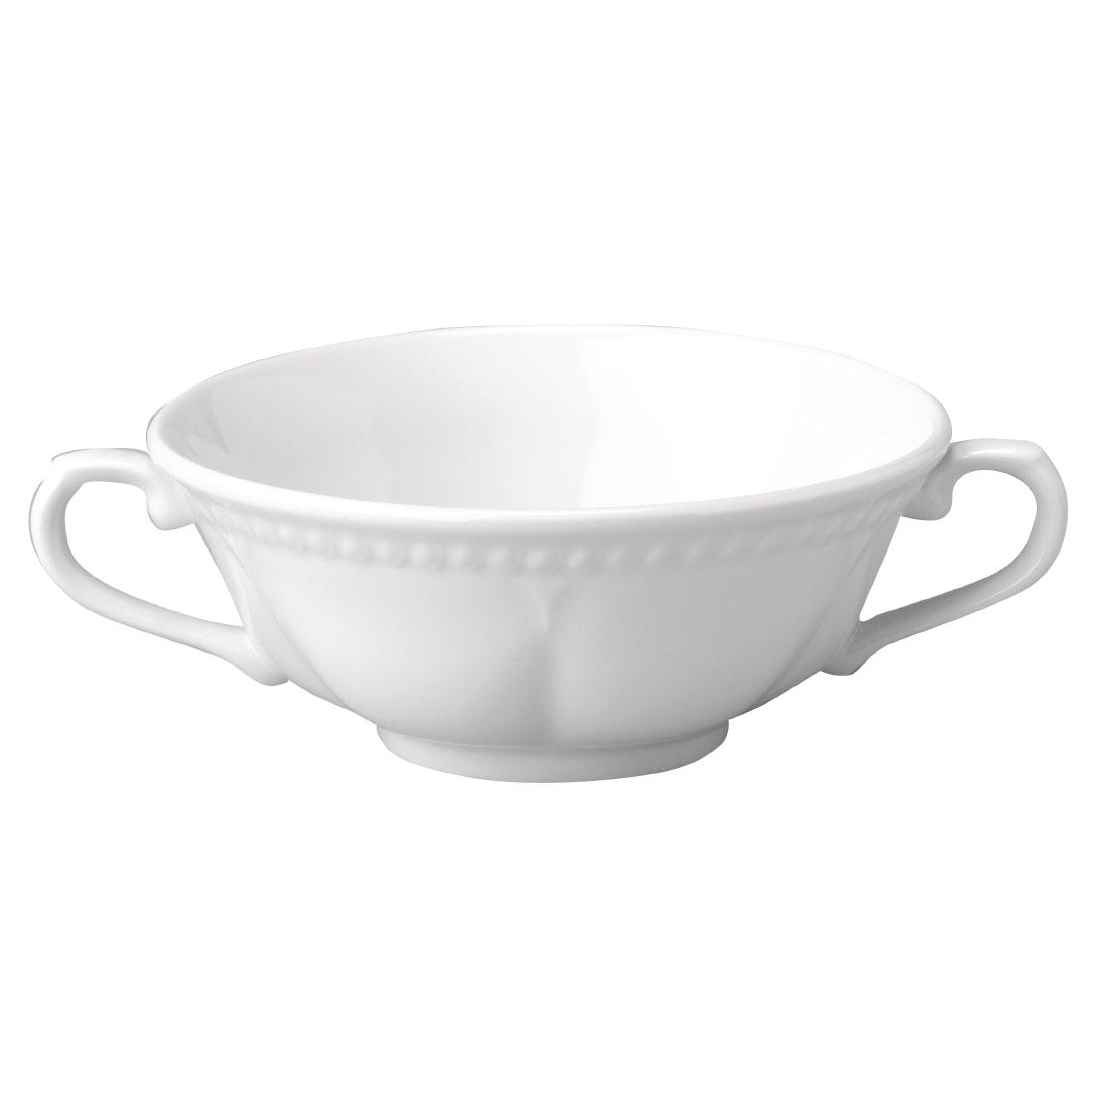 Churchill Buckingham White Handled Soup Bowls 384ml